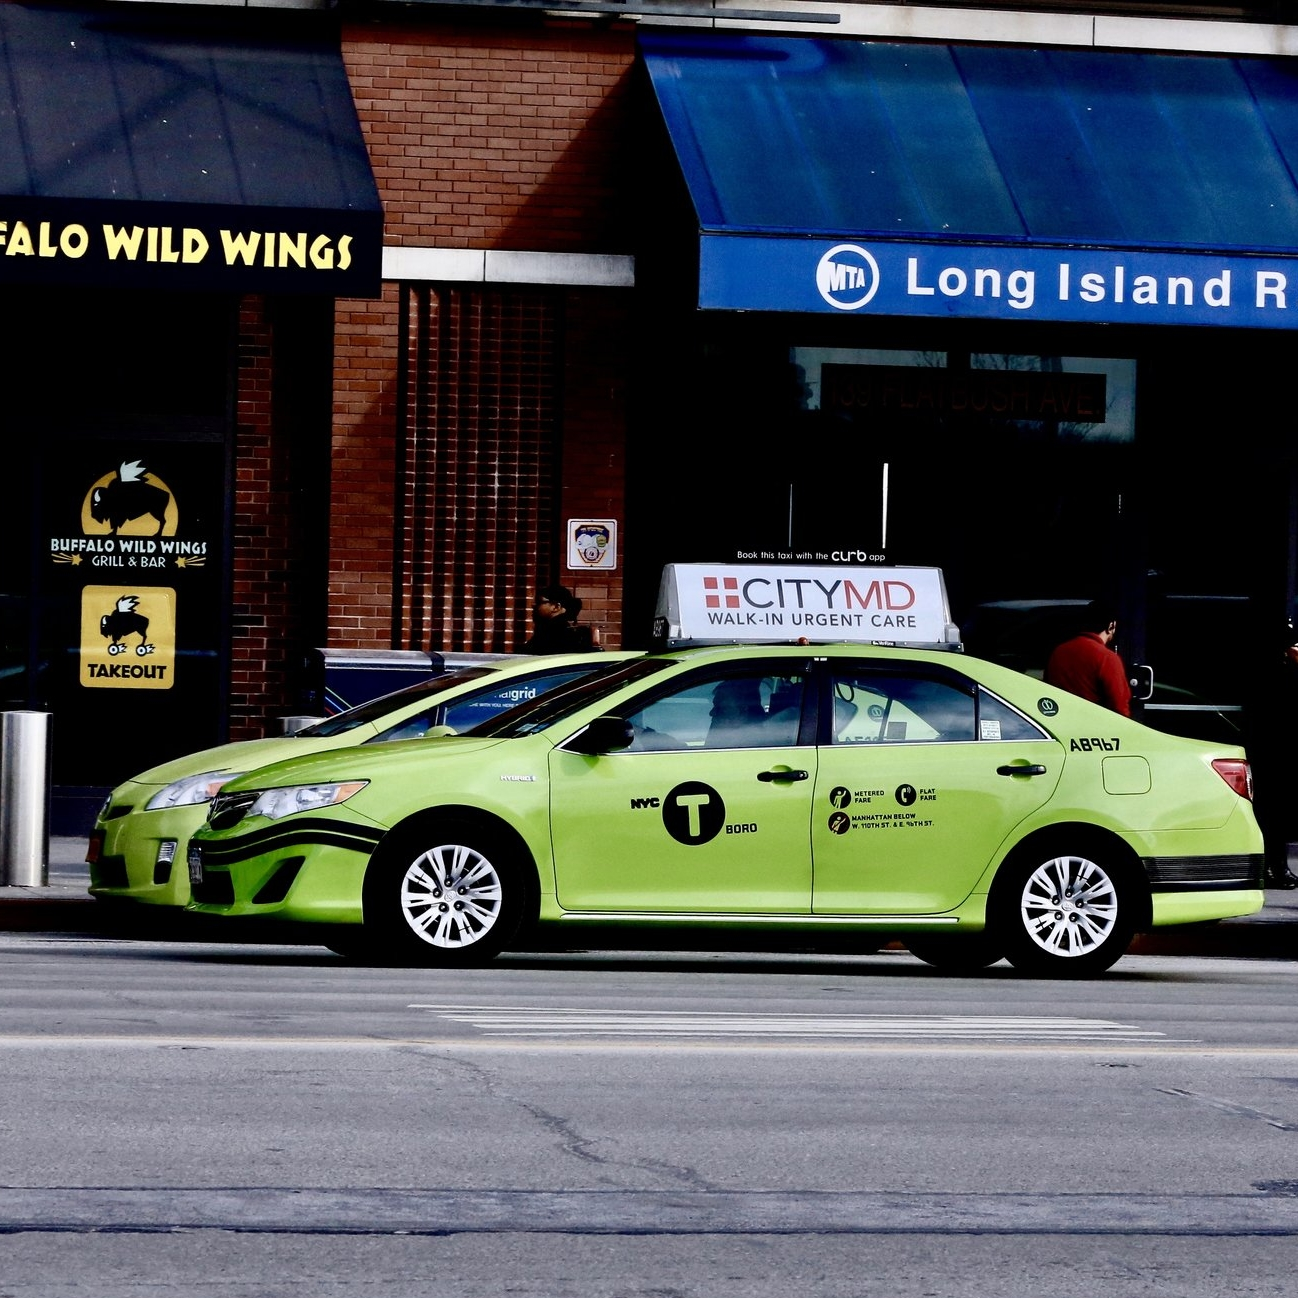 Taxi Top Advertising in New York City and Brooklyn